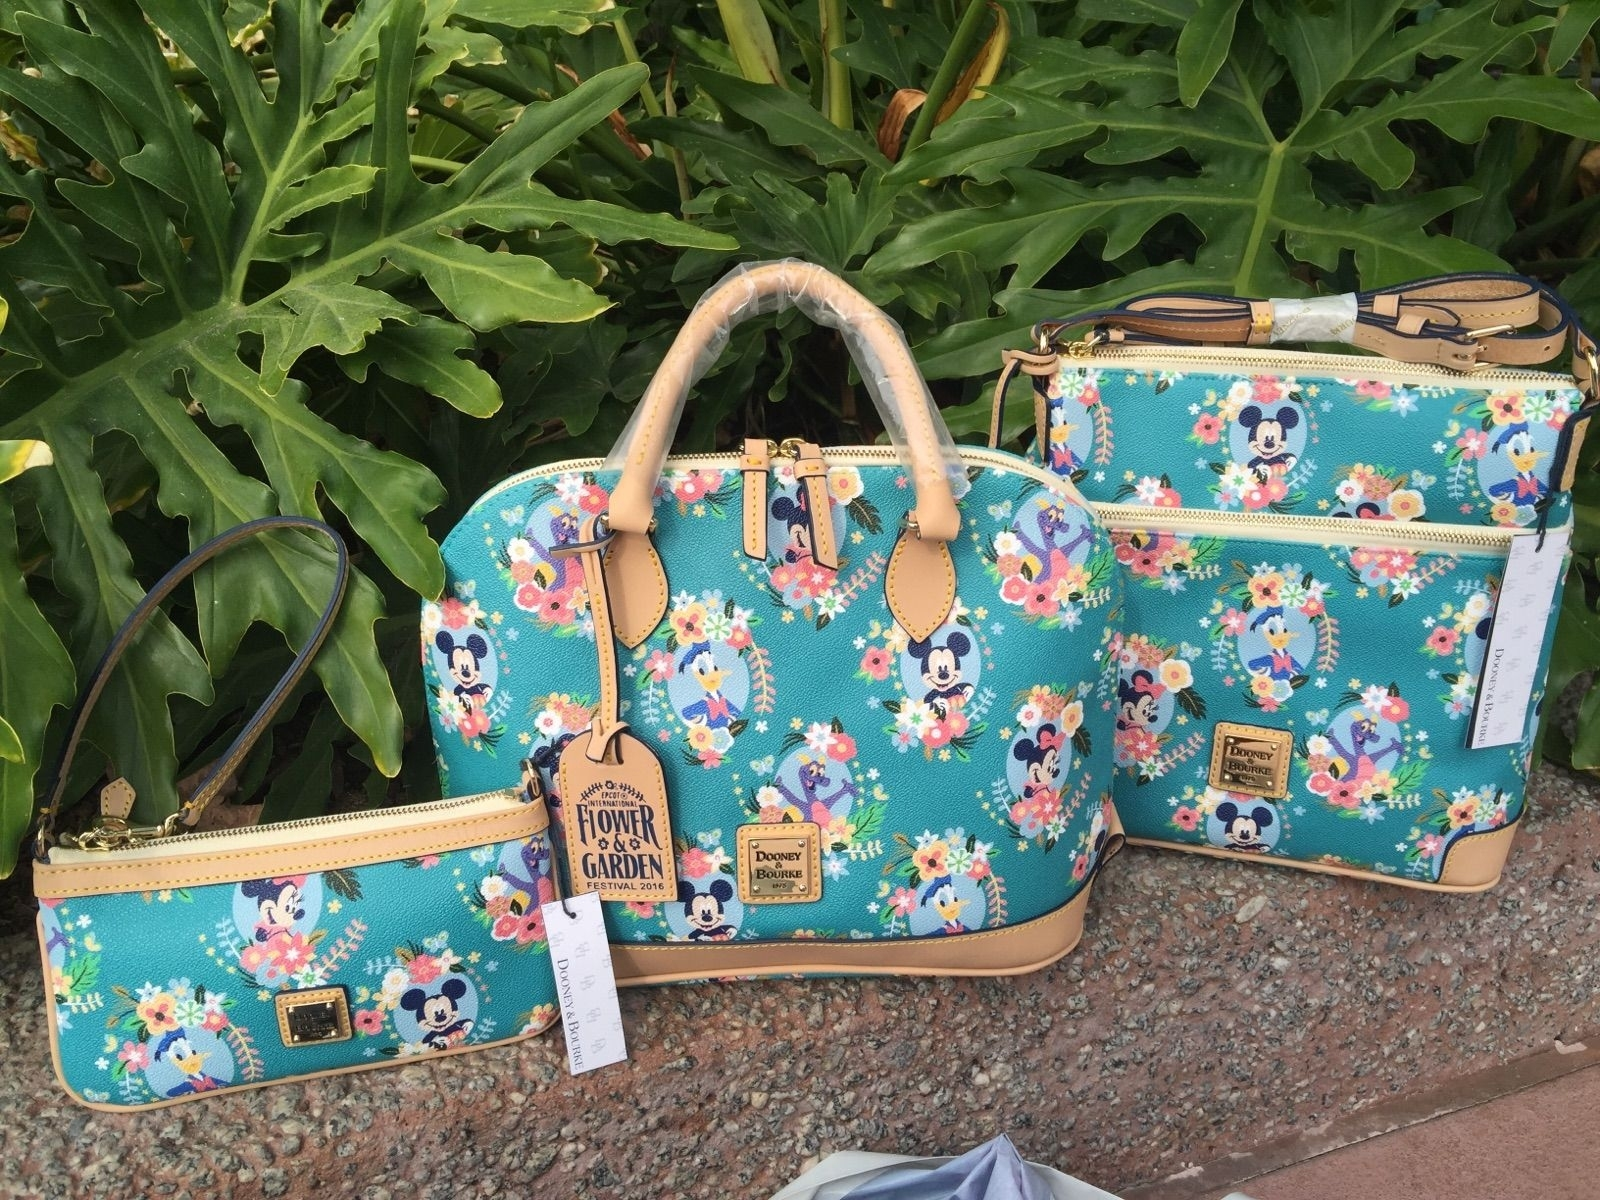 Epcot Flower And Garden Festival Dooney And Bourke Bags Now with Flower And Garden Festival Dooney And Bourke